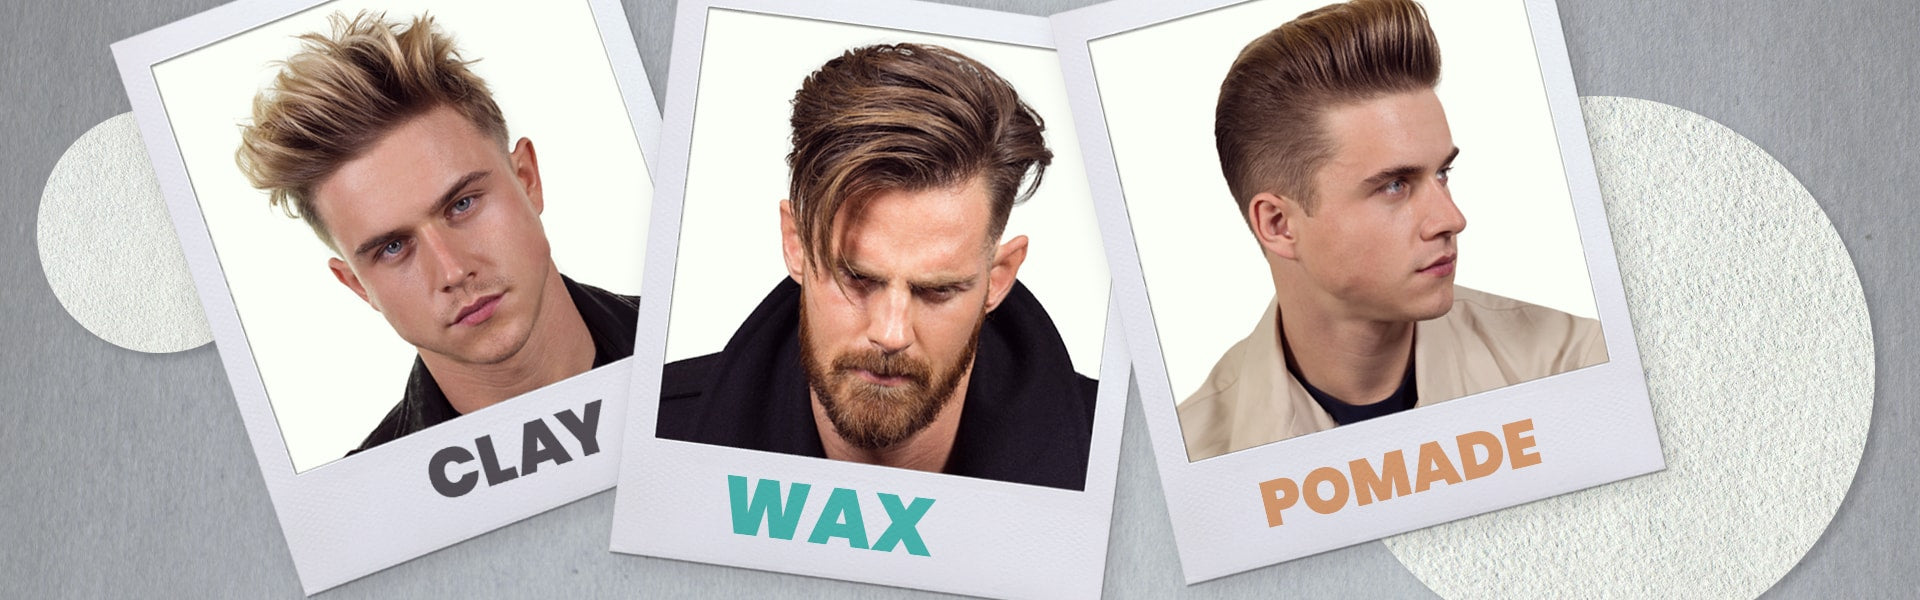 Hair Stylers 101: Clay, Wax, Pomade